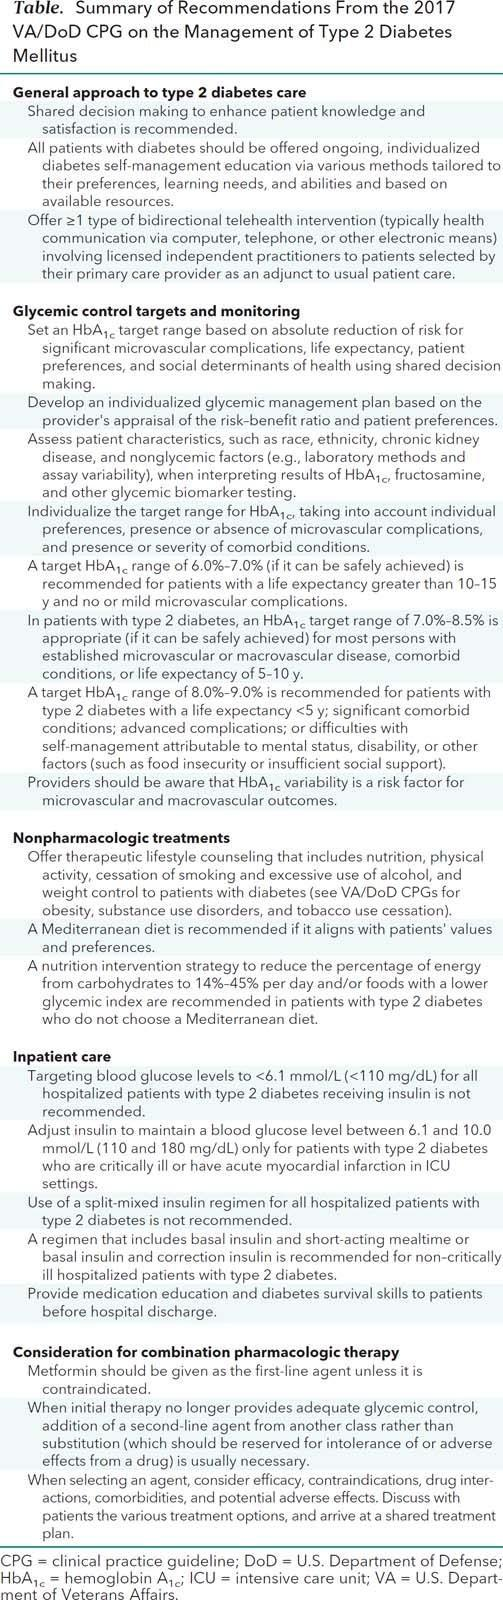 Synopsis Of The 2017 U.s. Department Of Veterans Affairs/u.s. Department Of Defense Clinical Practice Guideline: Management Of Type 2 Diabetes Mellitus Free